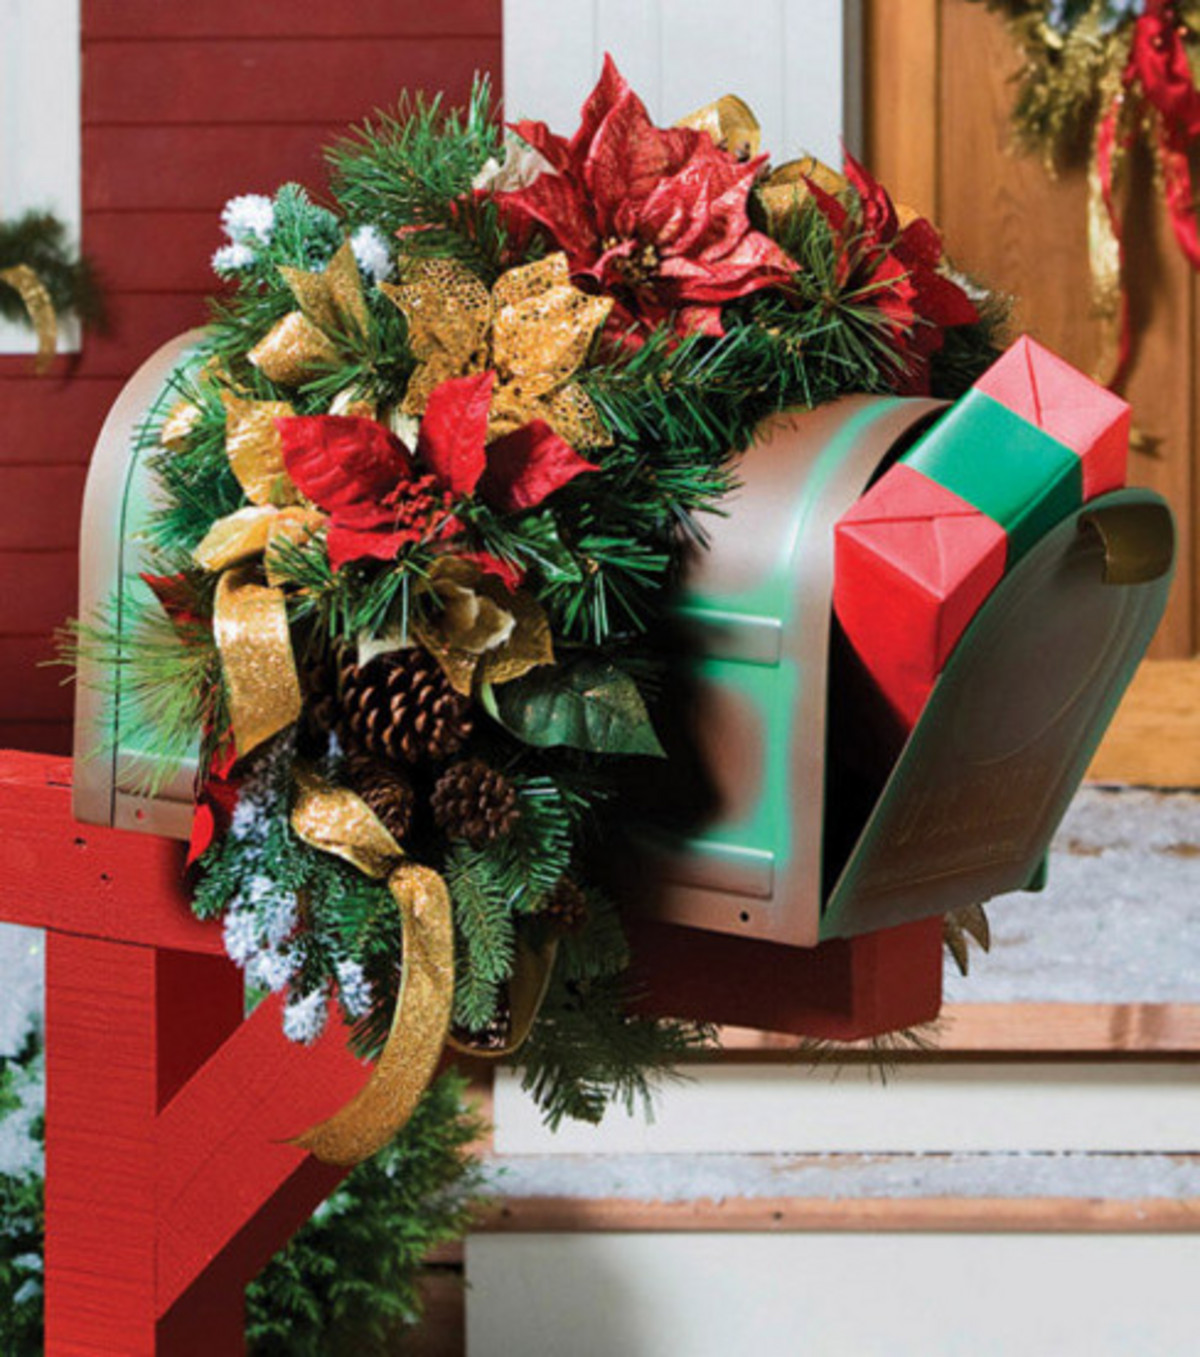 decorations have mailbox boards that you pinkii from creative christmas decor should loveitsomuch swag